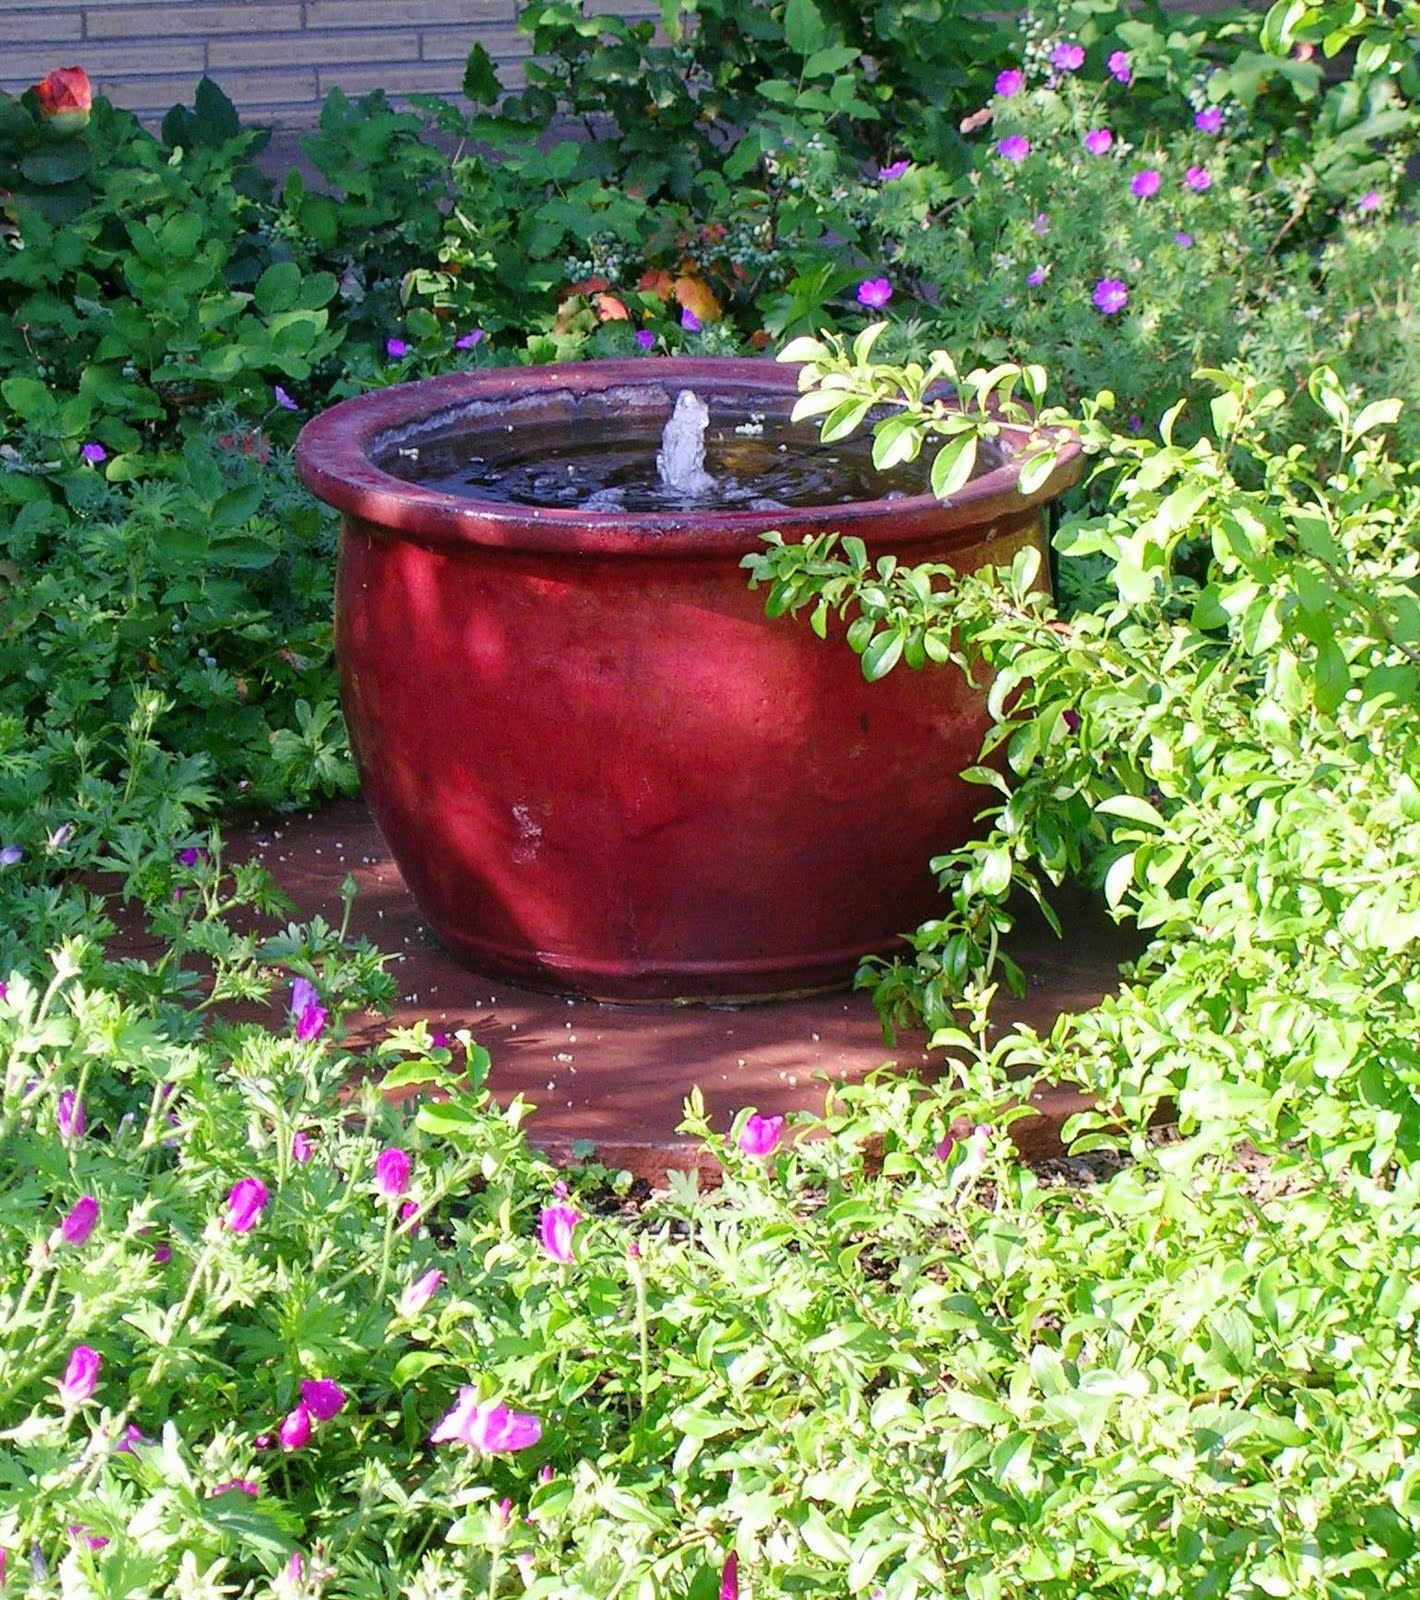 The art garden garden designers roundtable containers for Pot water fountain designs